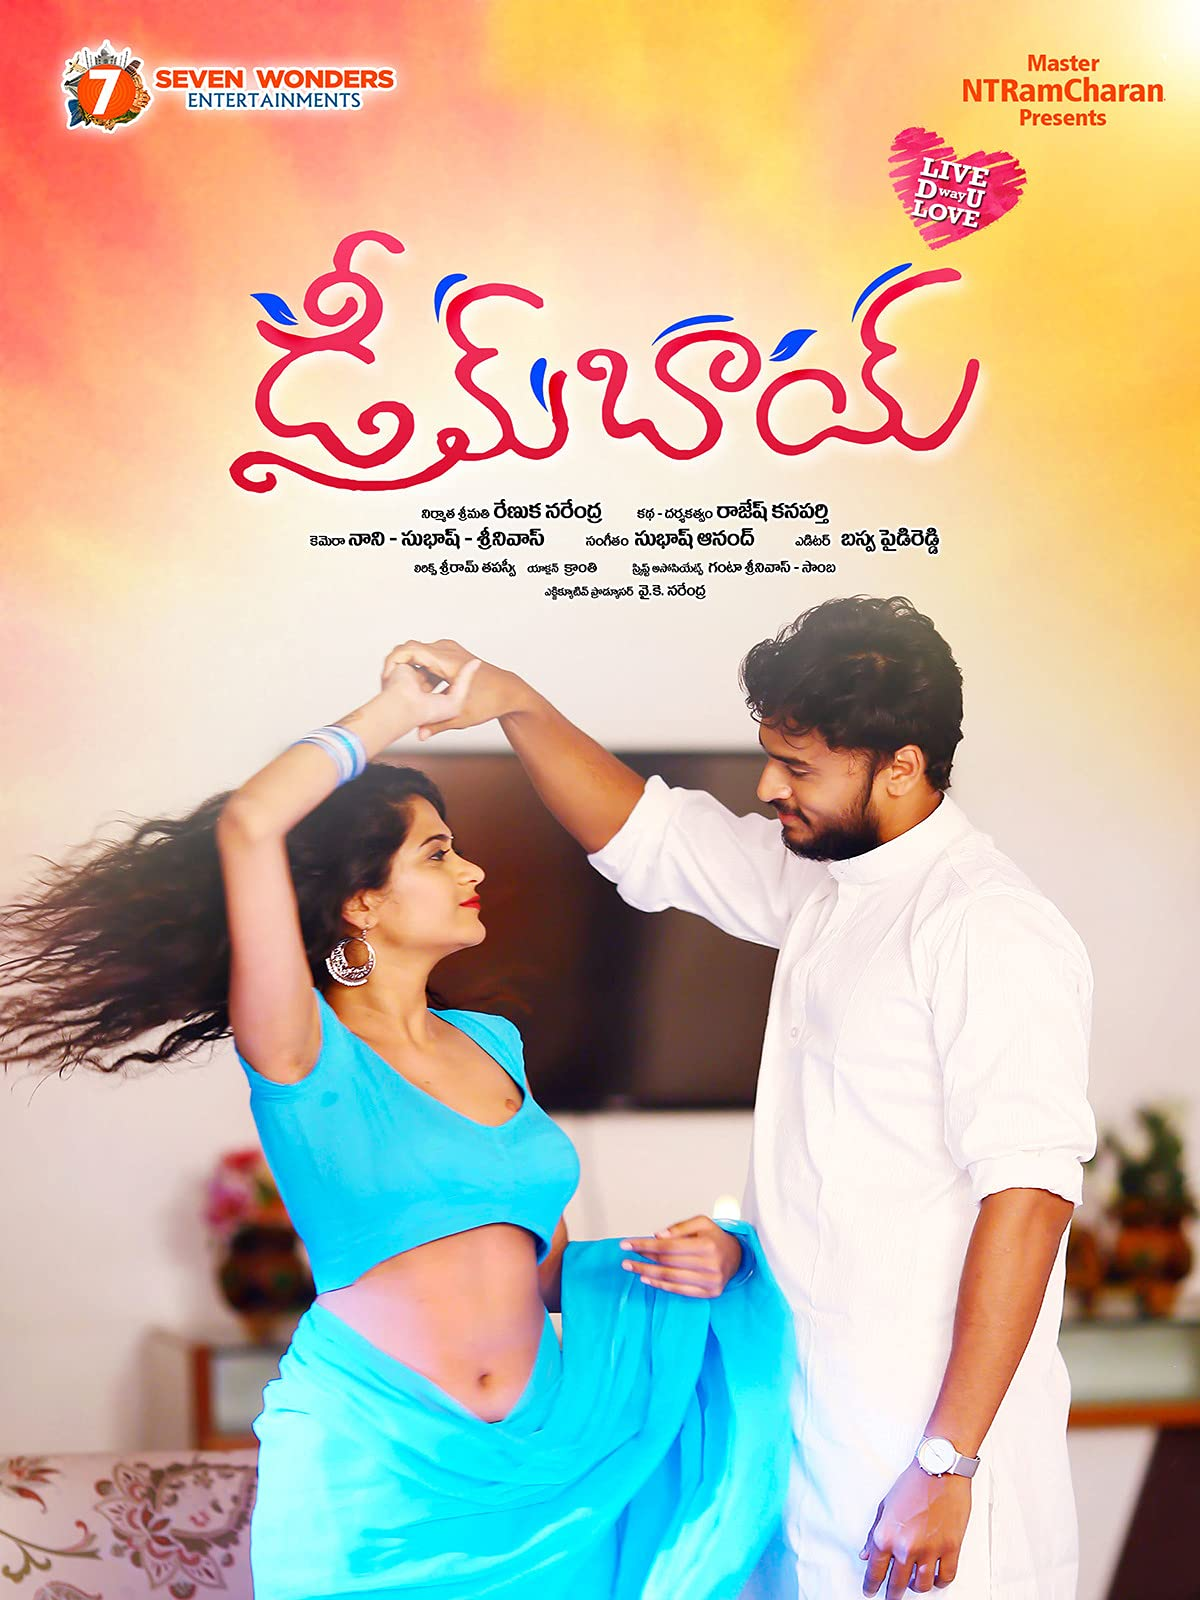 Dream Boy (2021) Telugu 480p HDRip x264 AAC 500MB ESub